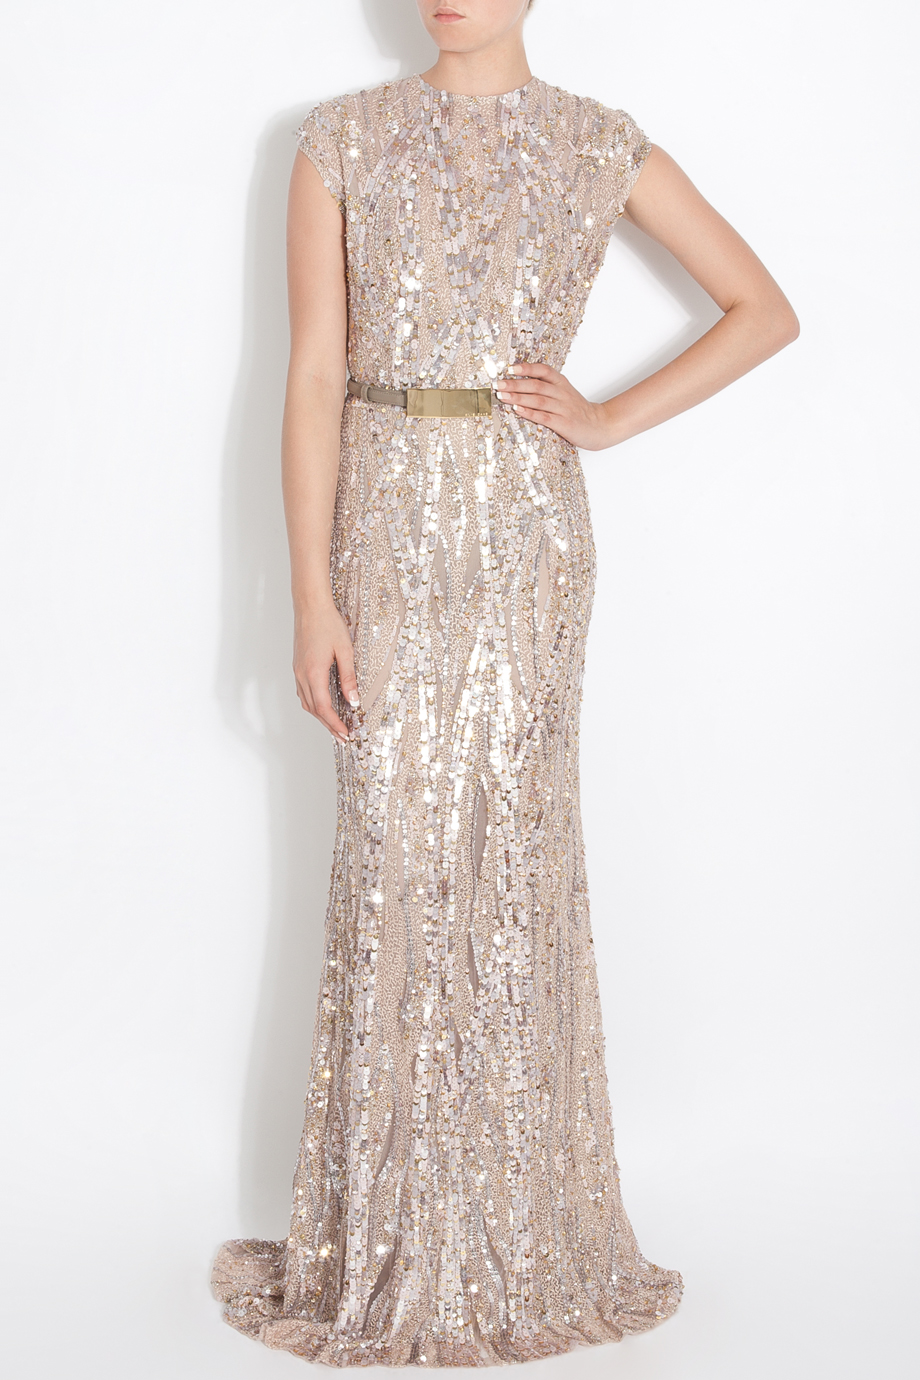 Elie Saab Fully Sequin Gown In Pink Lyst